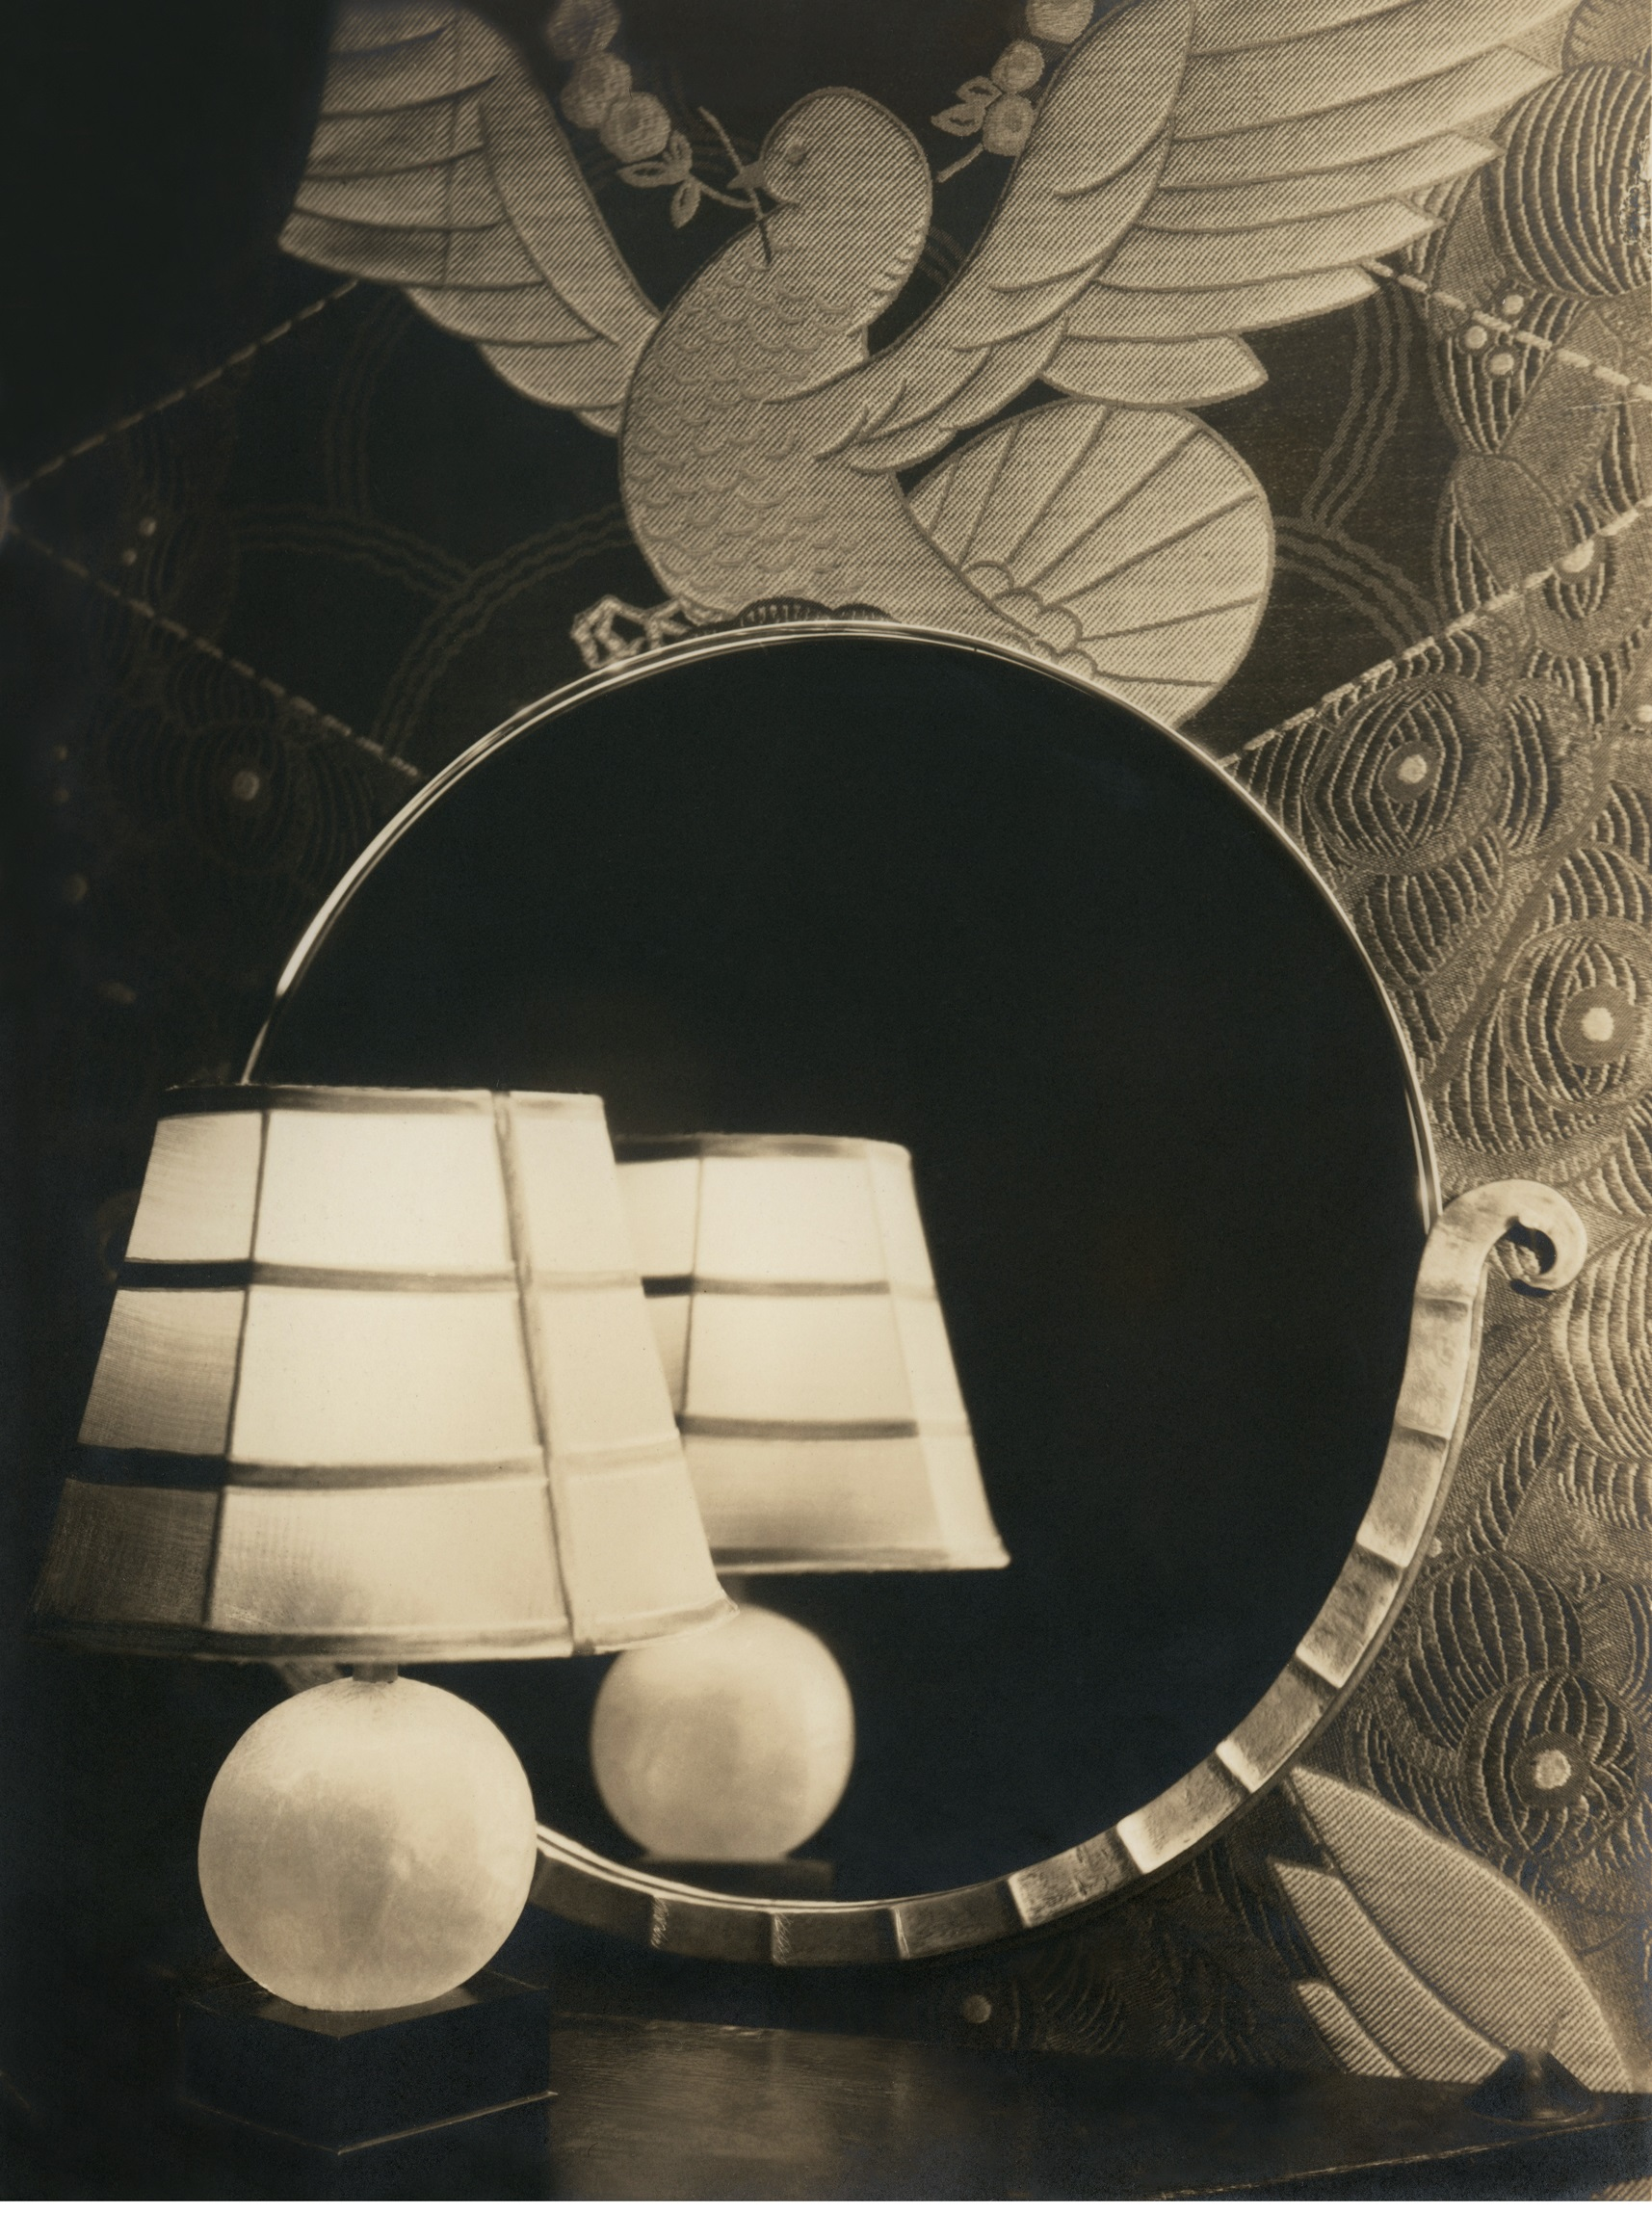 M. Watkins. Untitled. Lamp and Mirror c.1925